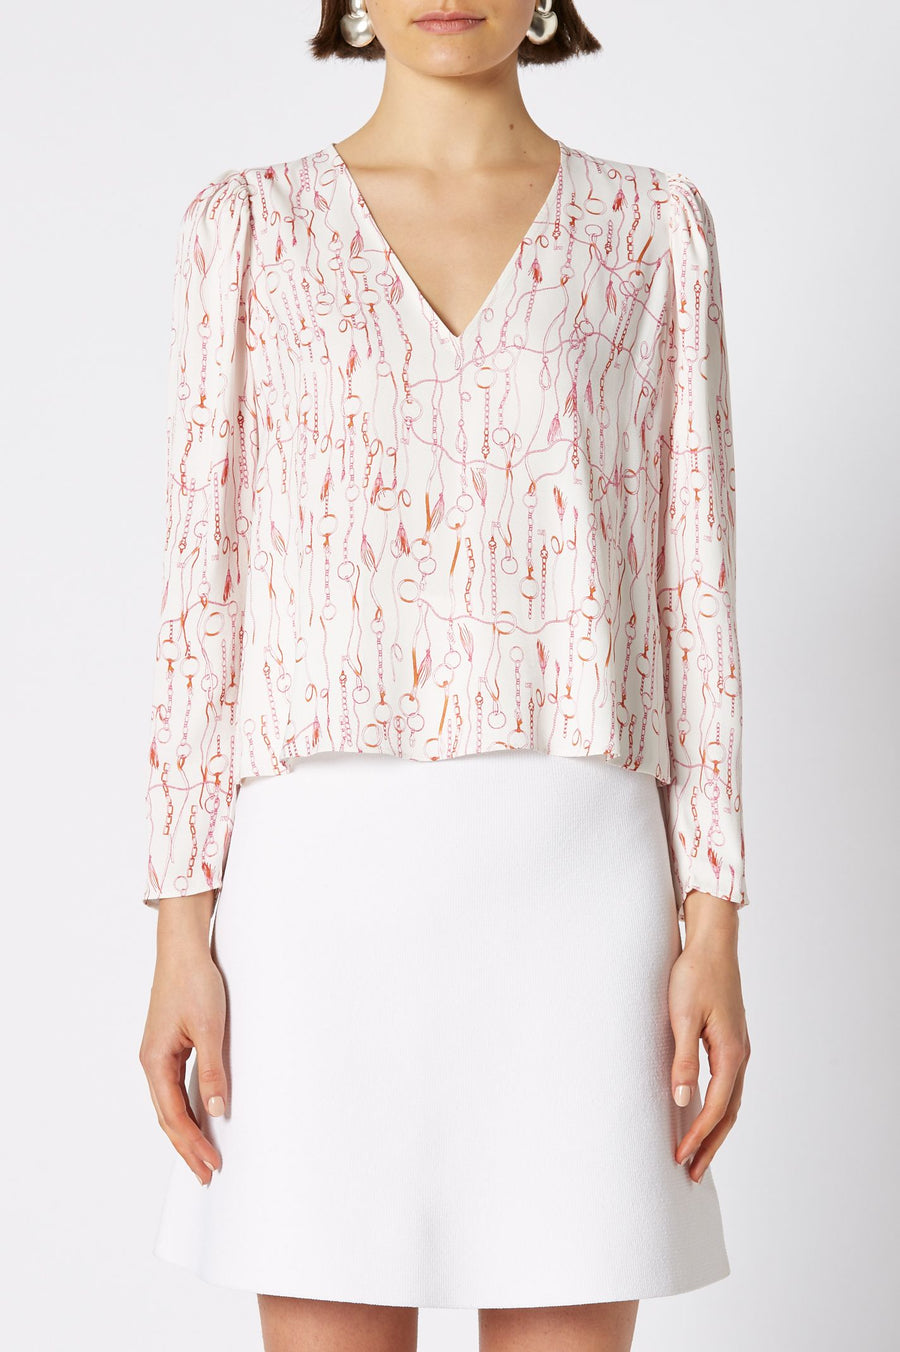 Chain Print Blouse White, relaxed fit, long sleeves, v-neckline.